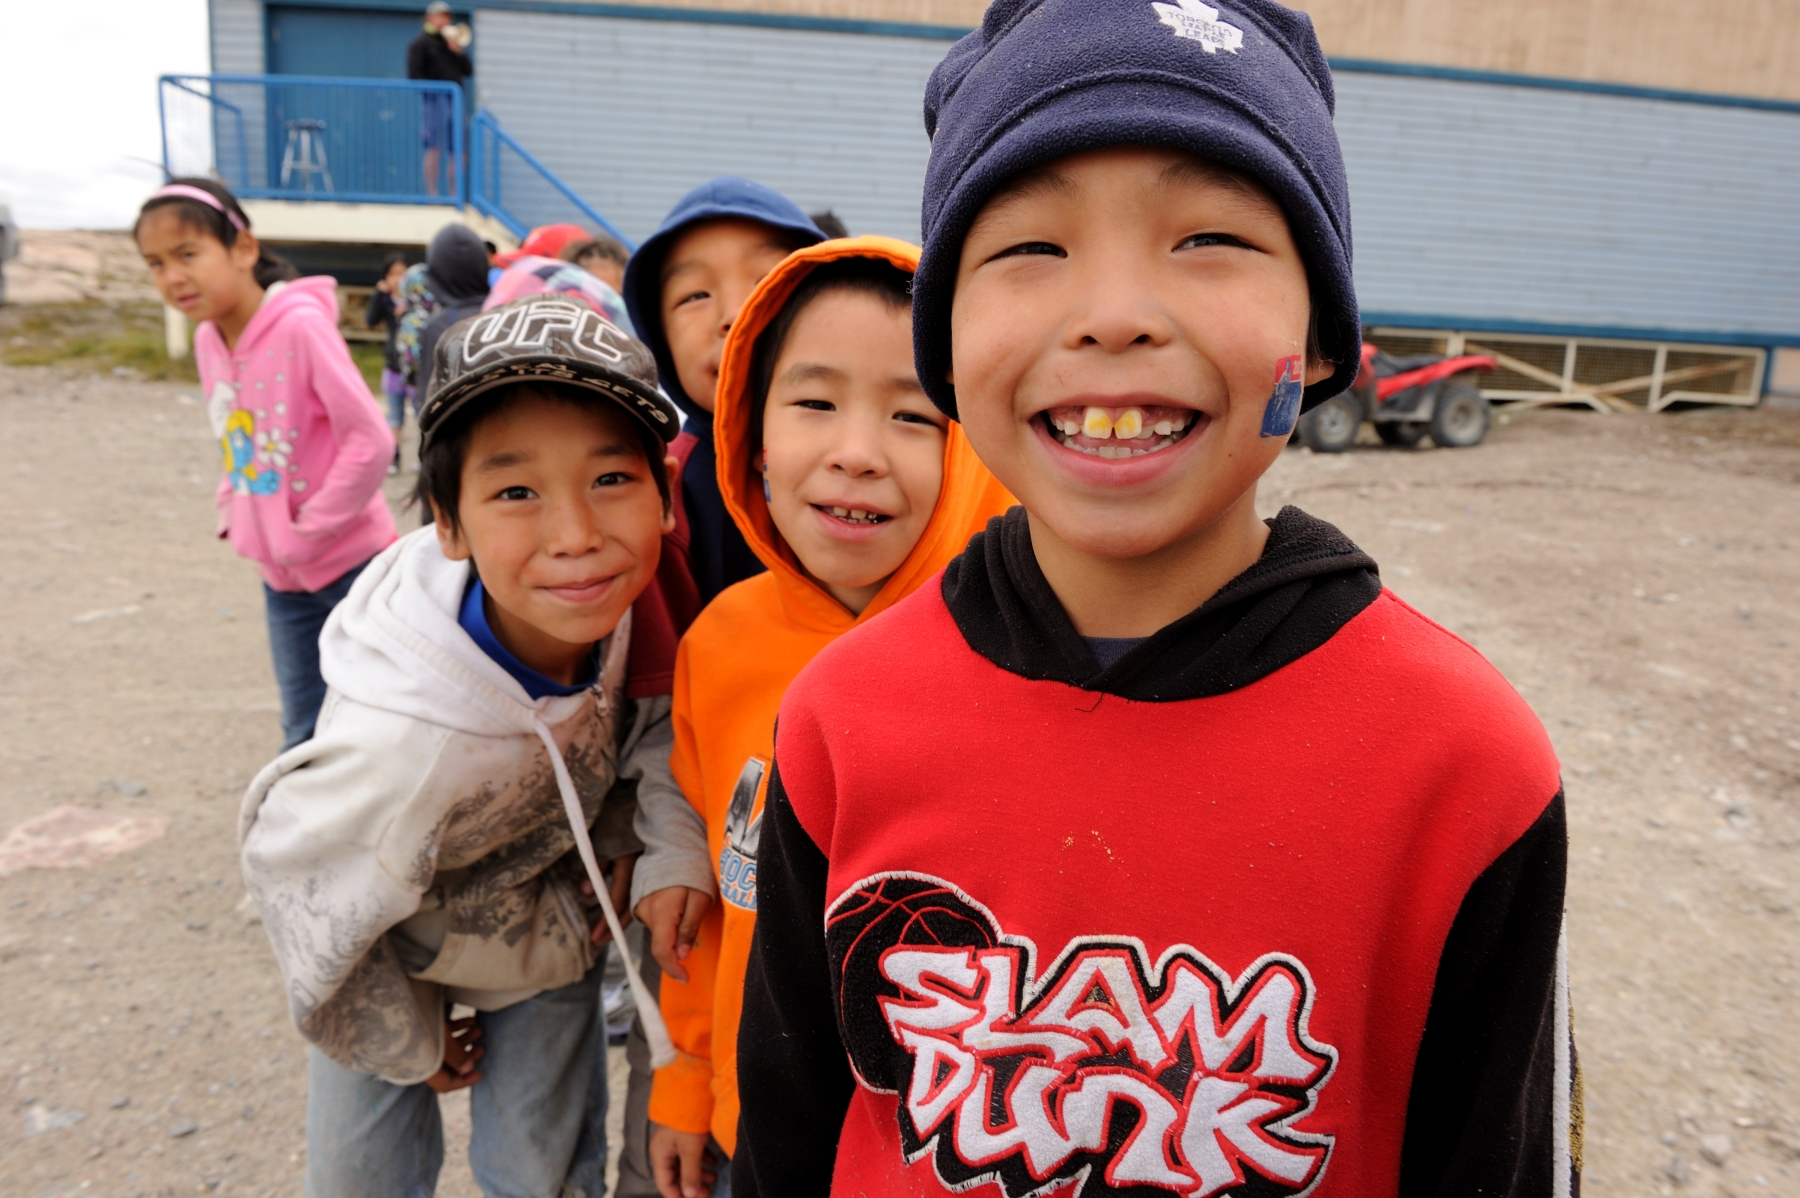 Young students from the Tusarvik School were excited to start the race.